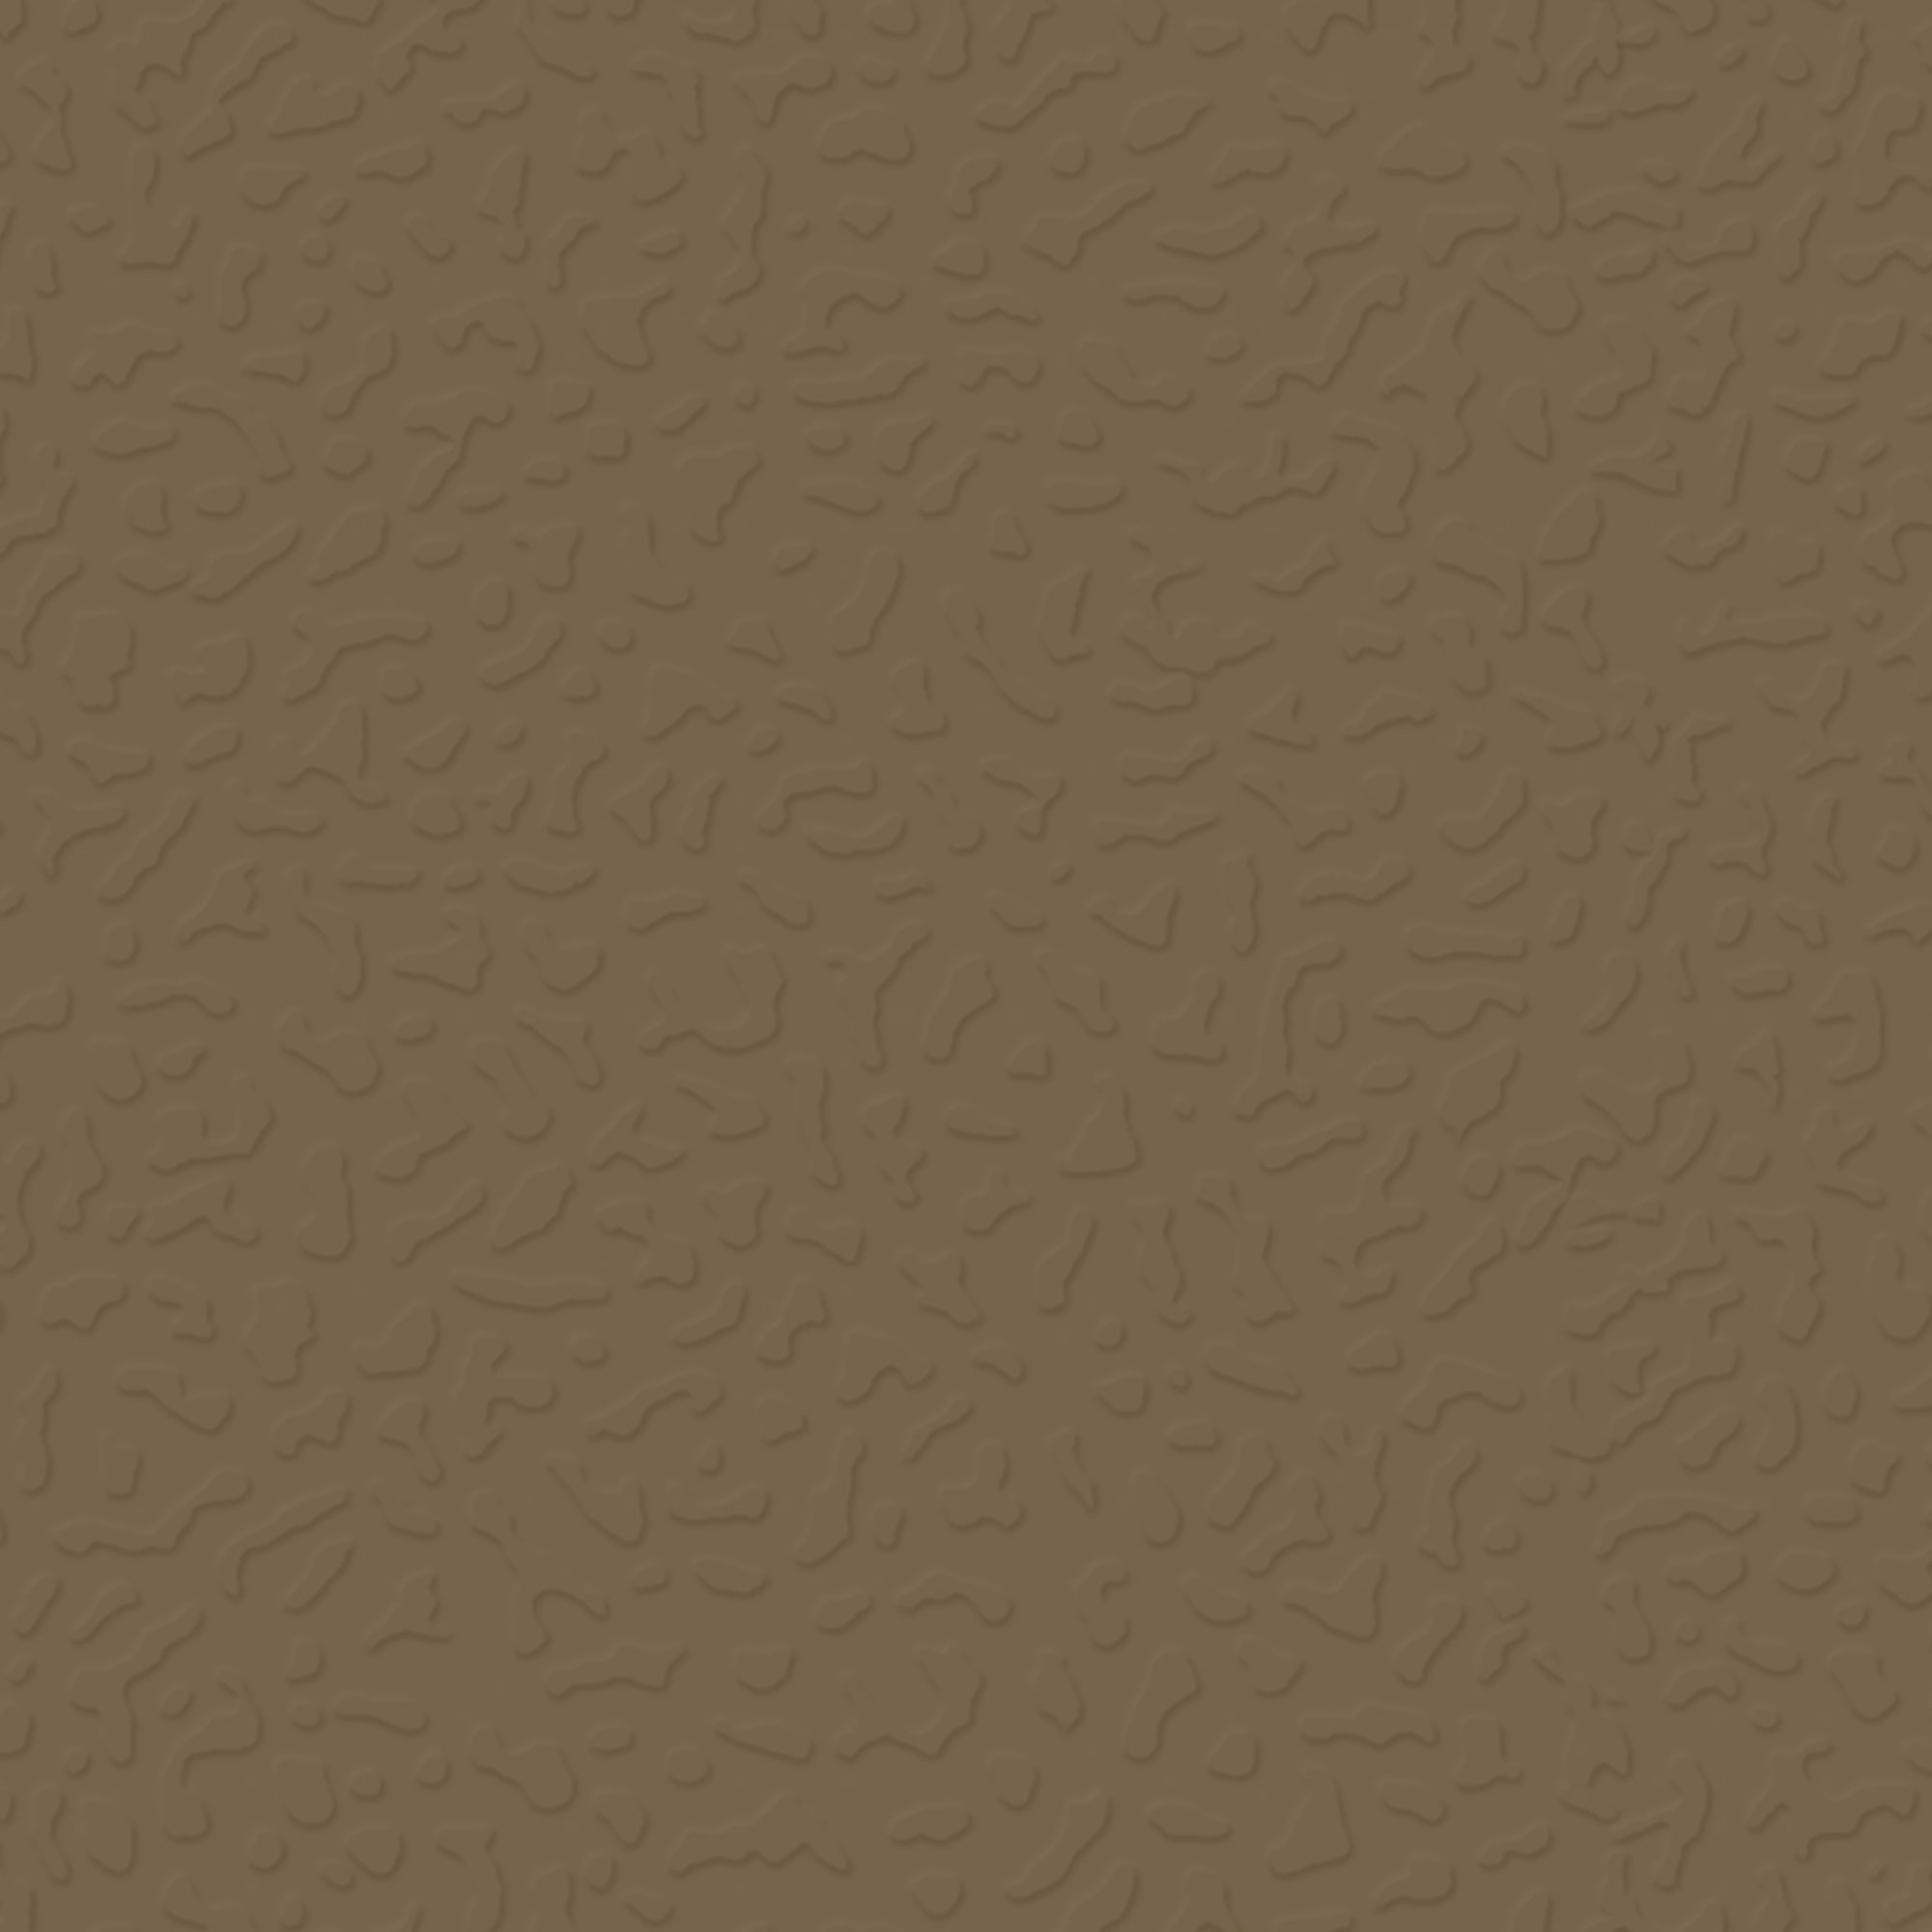 Roppe Rubber Tile 900 - Textured Design (993) Chameleon LB996624